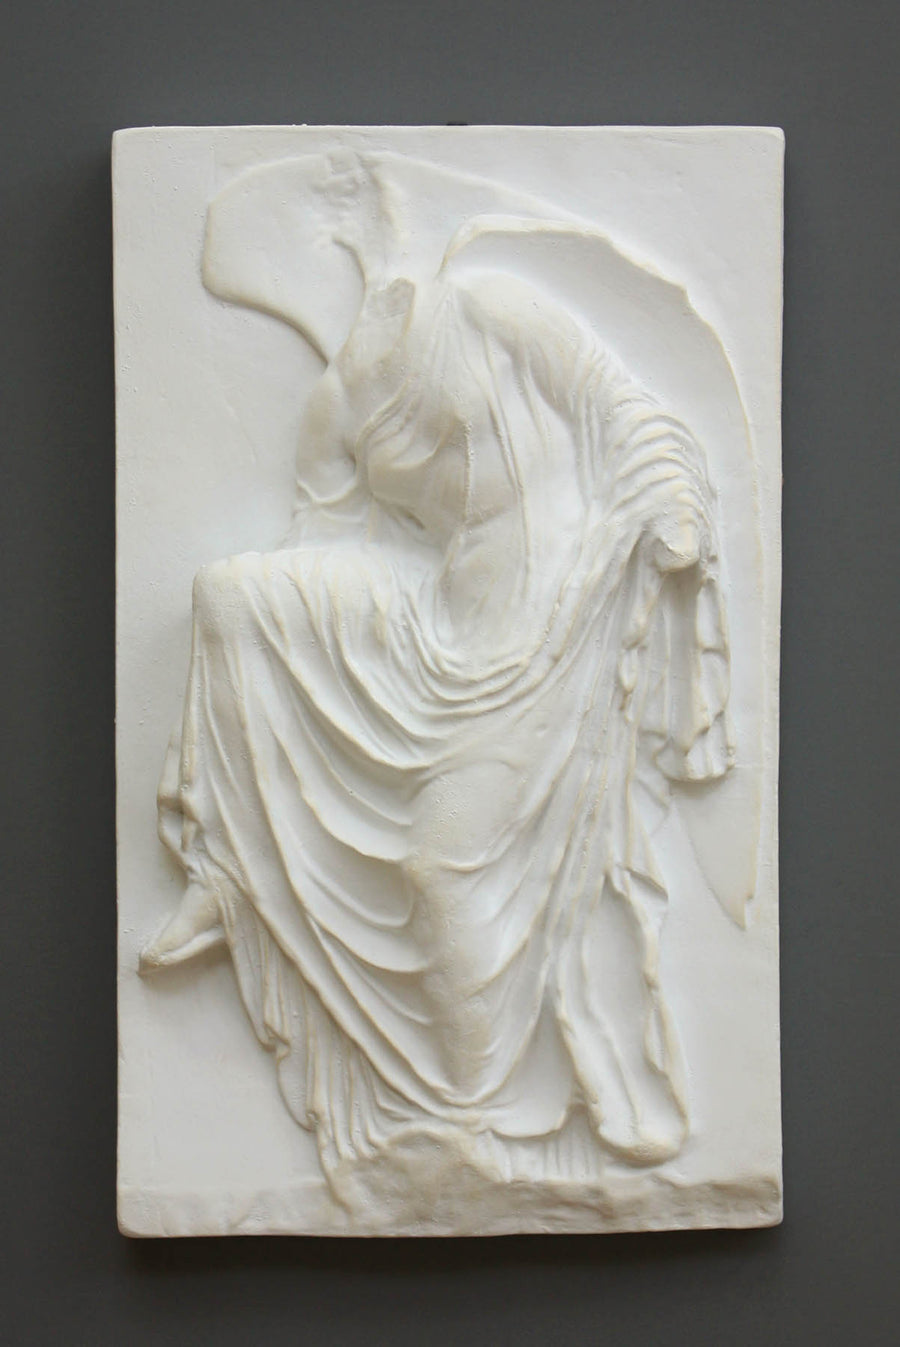 photo of cast of sculpture relief of robed figure, head now missing, reaching for her sandal on a dark gray background